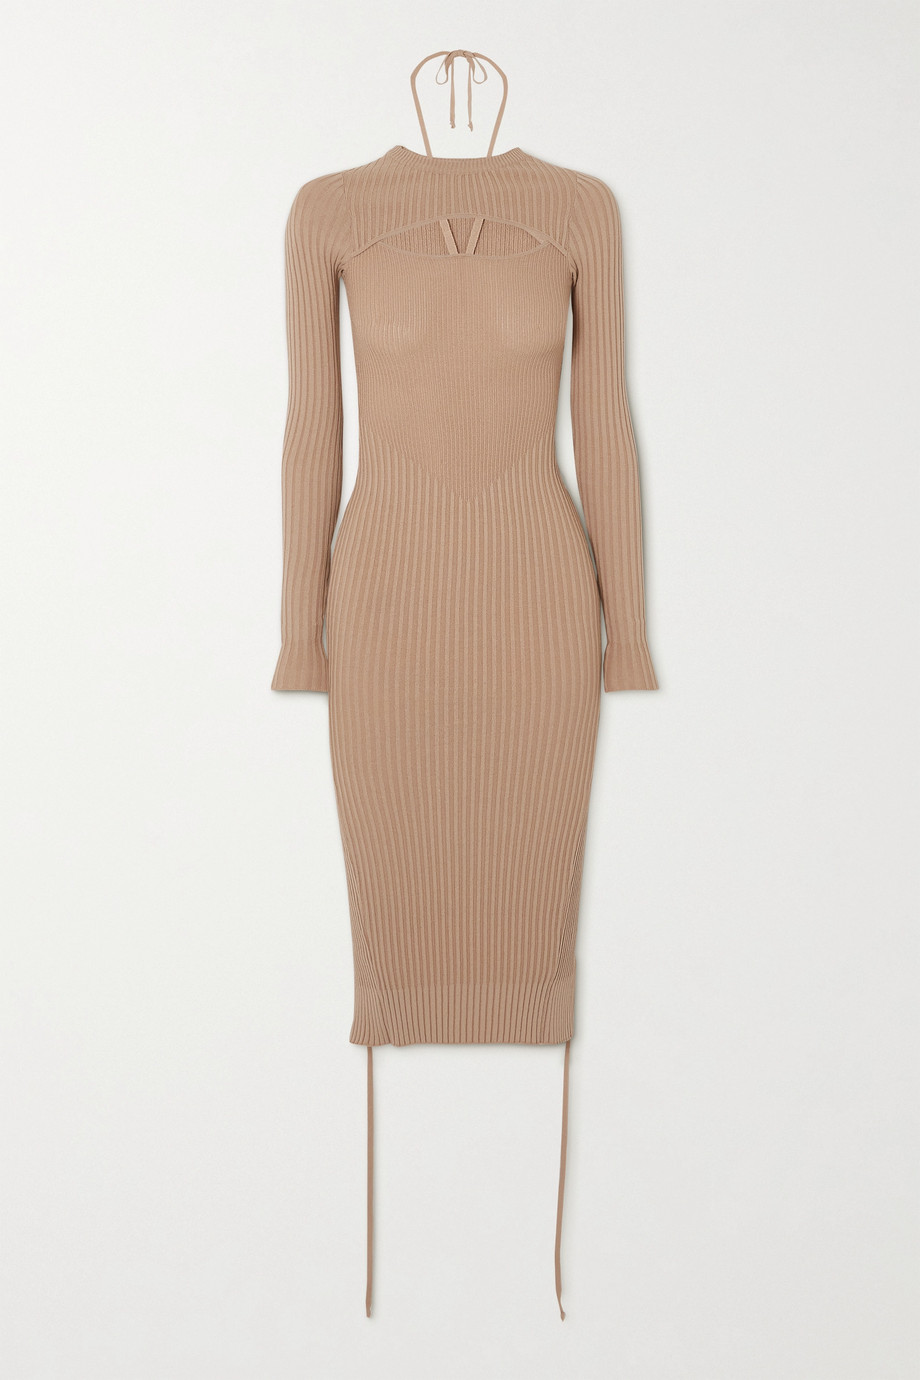 Andrea Adamo Cutout ribbed-knit midi dress